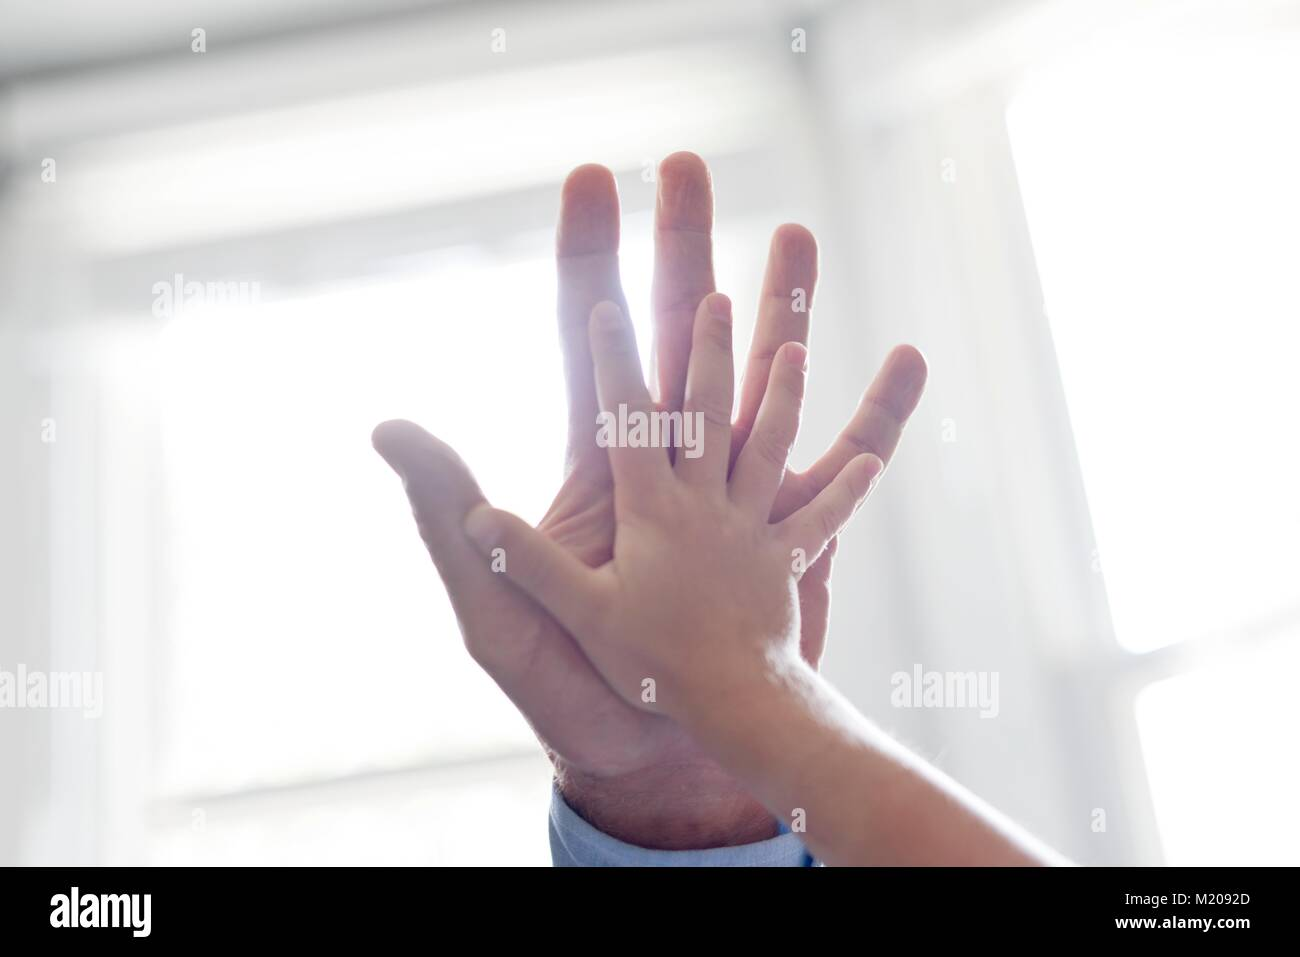 Child and adult touching hands. - Stock Image